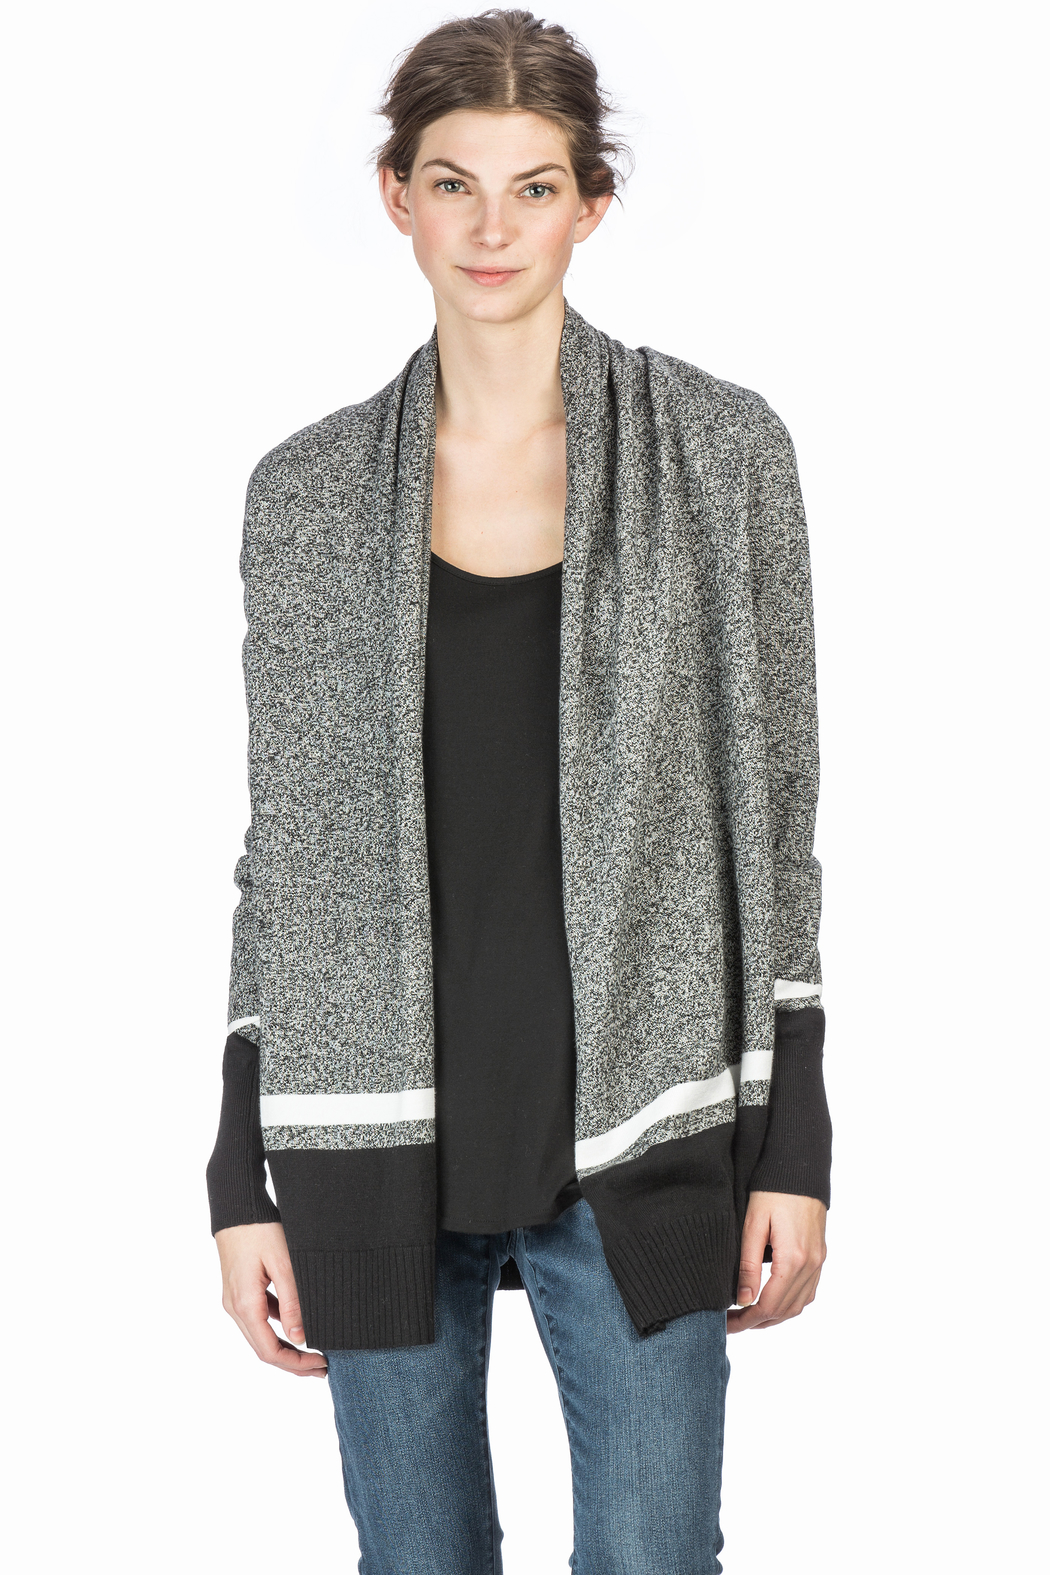 Lilla P Long Sleeve Open Cardigan from Illinois by Notice — Shoptiques